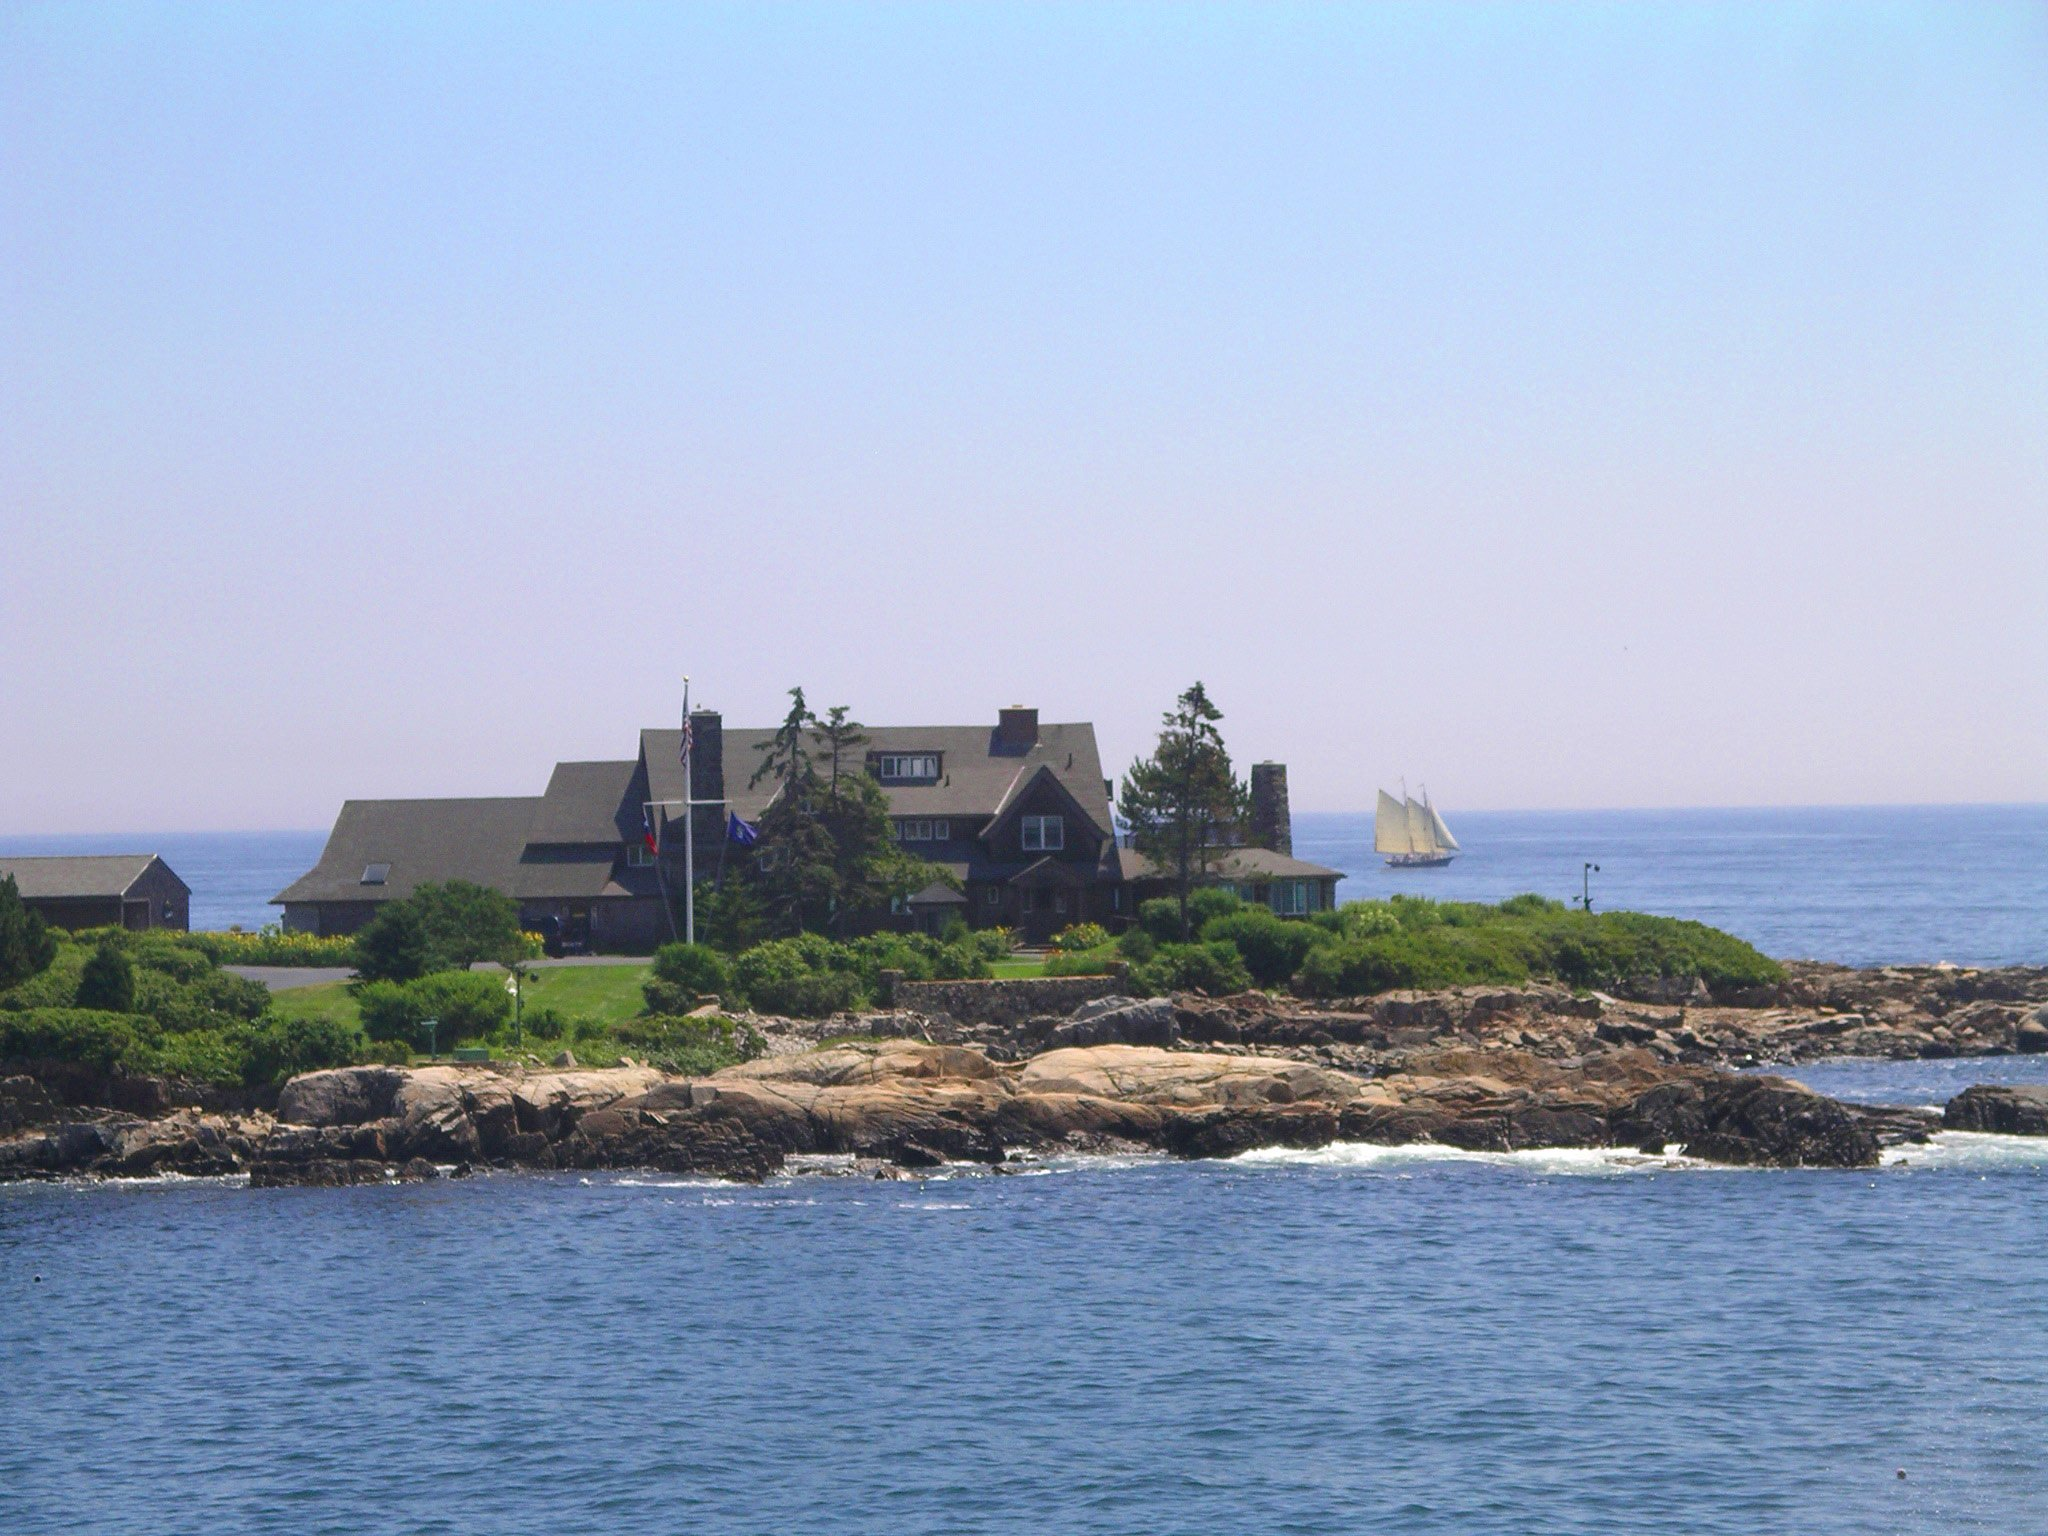 Walkers Point - see much more at KennebunkportMaineLodging.com Site